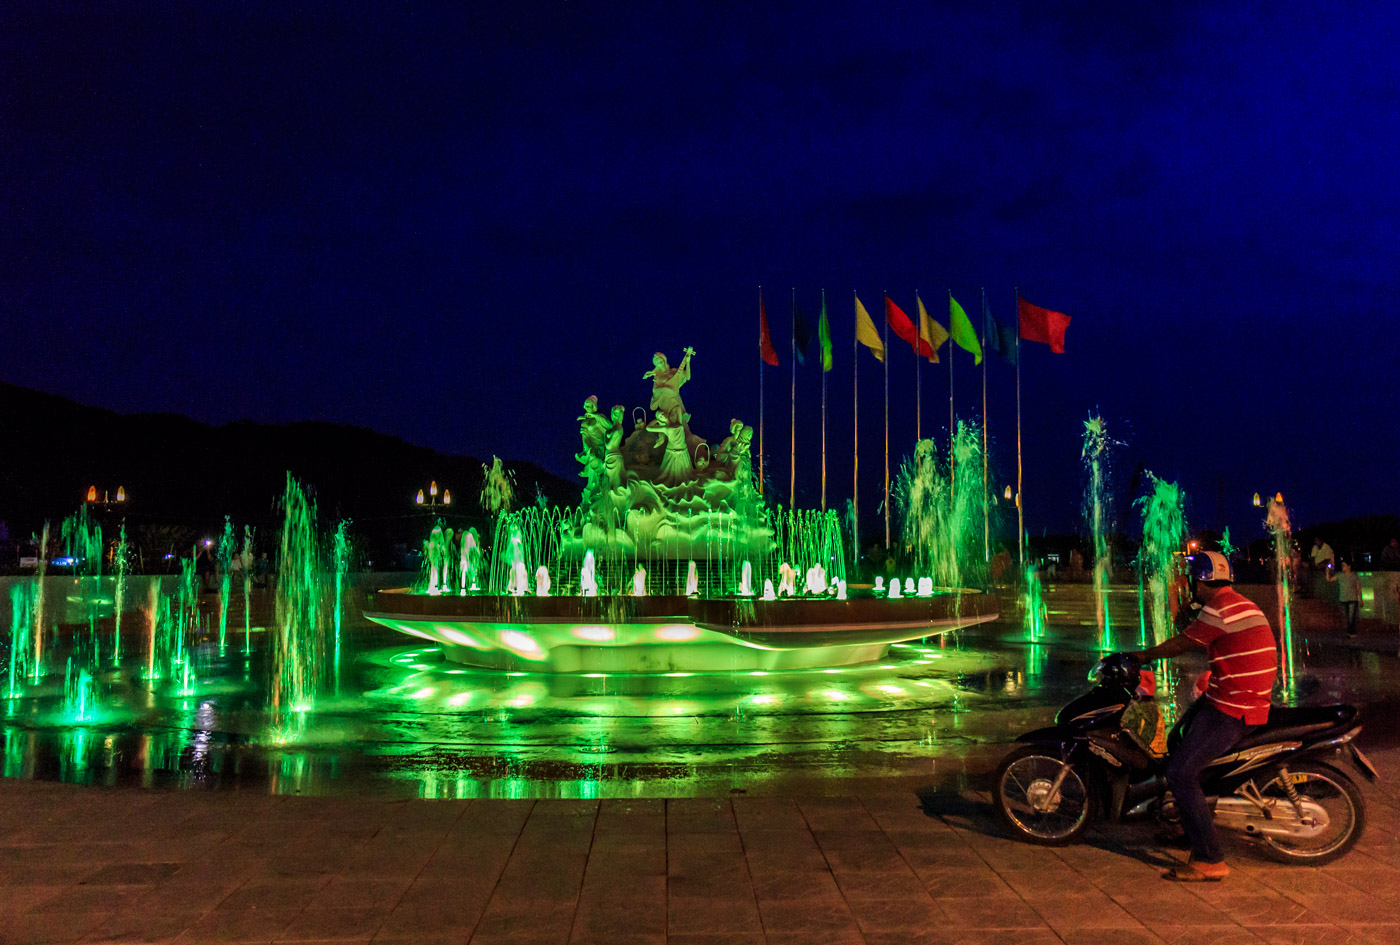 The fountain is lit up at night.